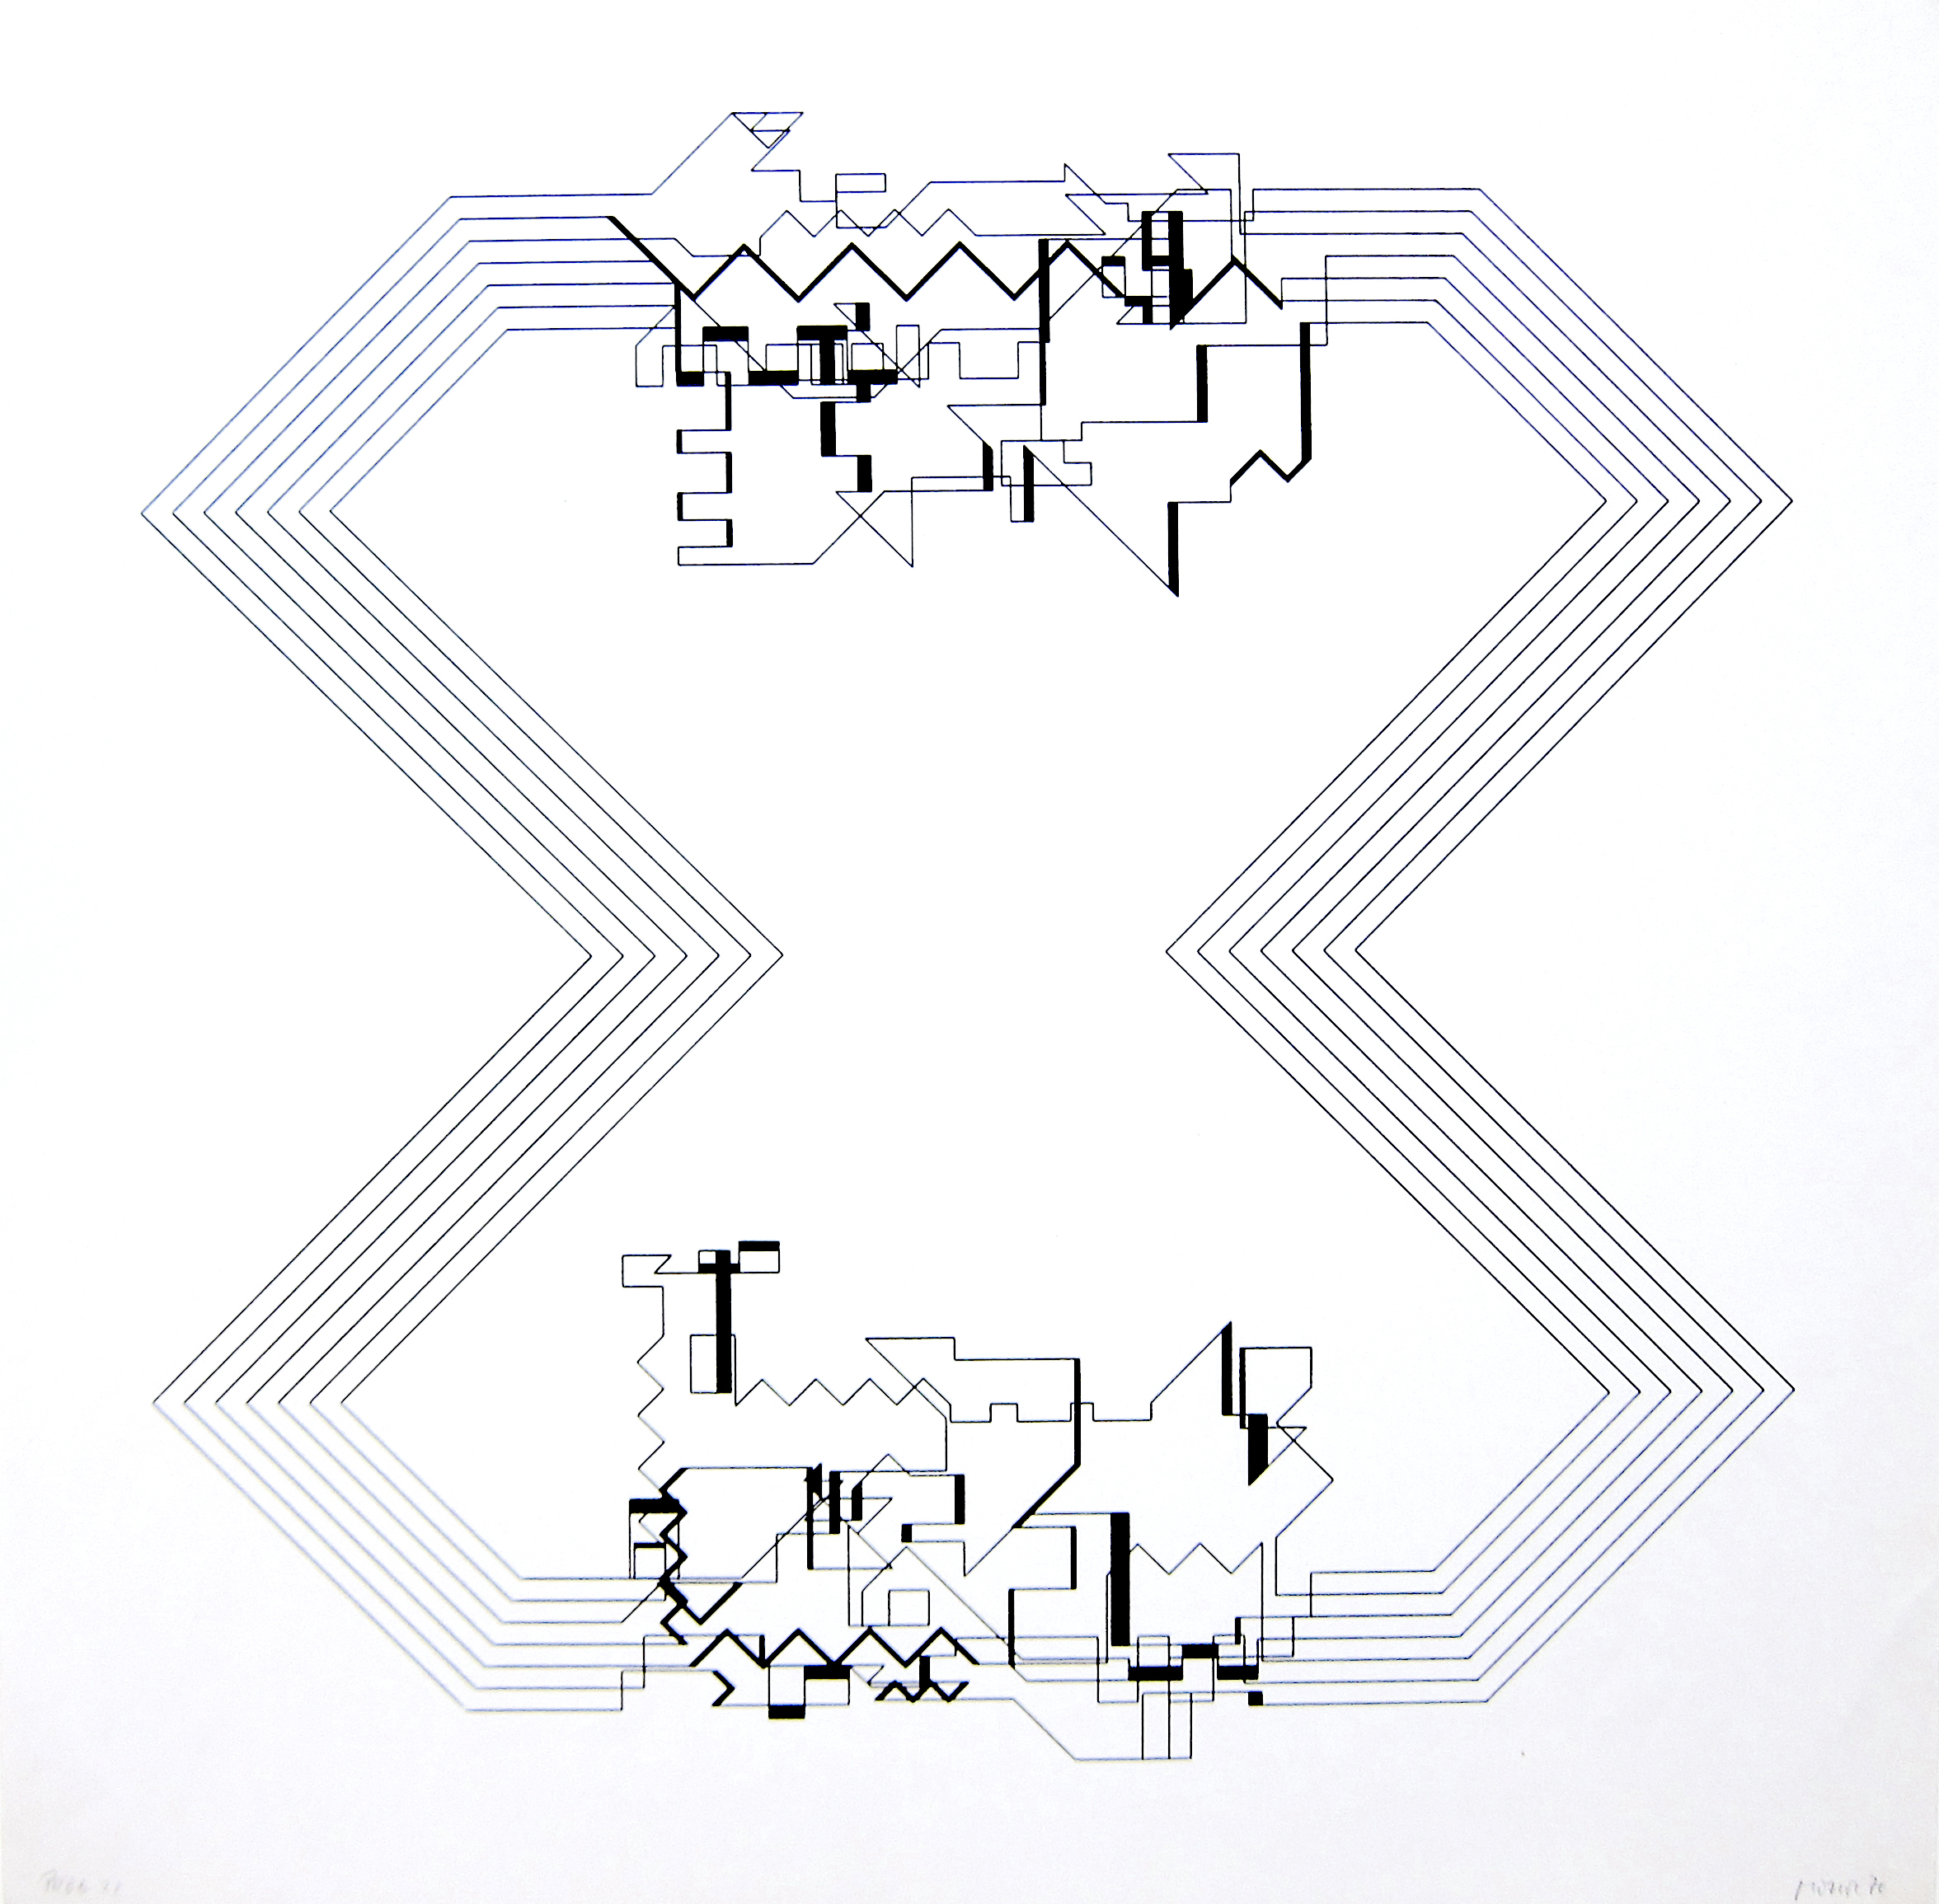 Manfred MohrP-22, plotter drawing, ink on paper, 37 x 36 cm, 1970